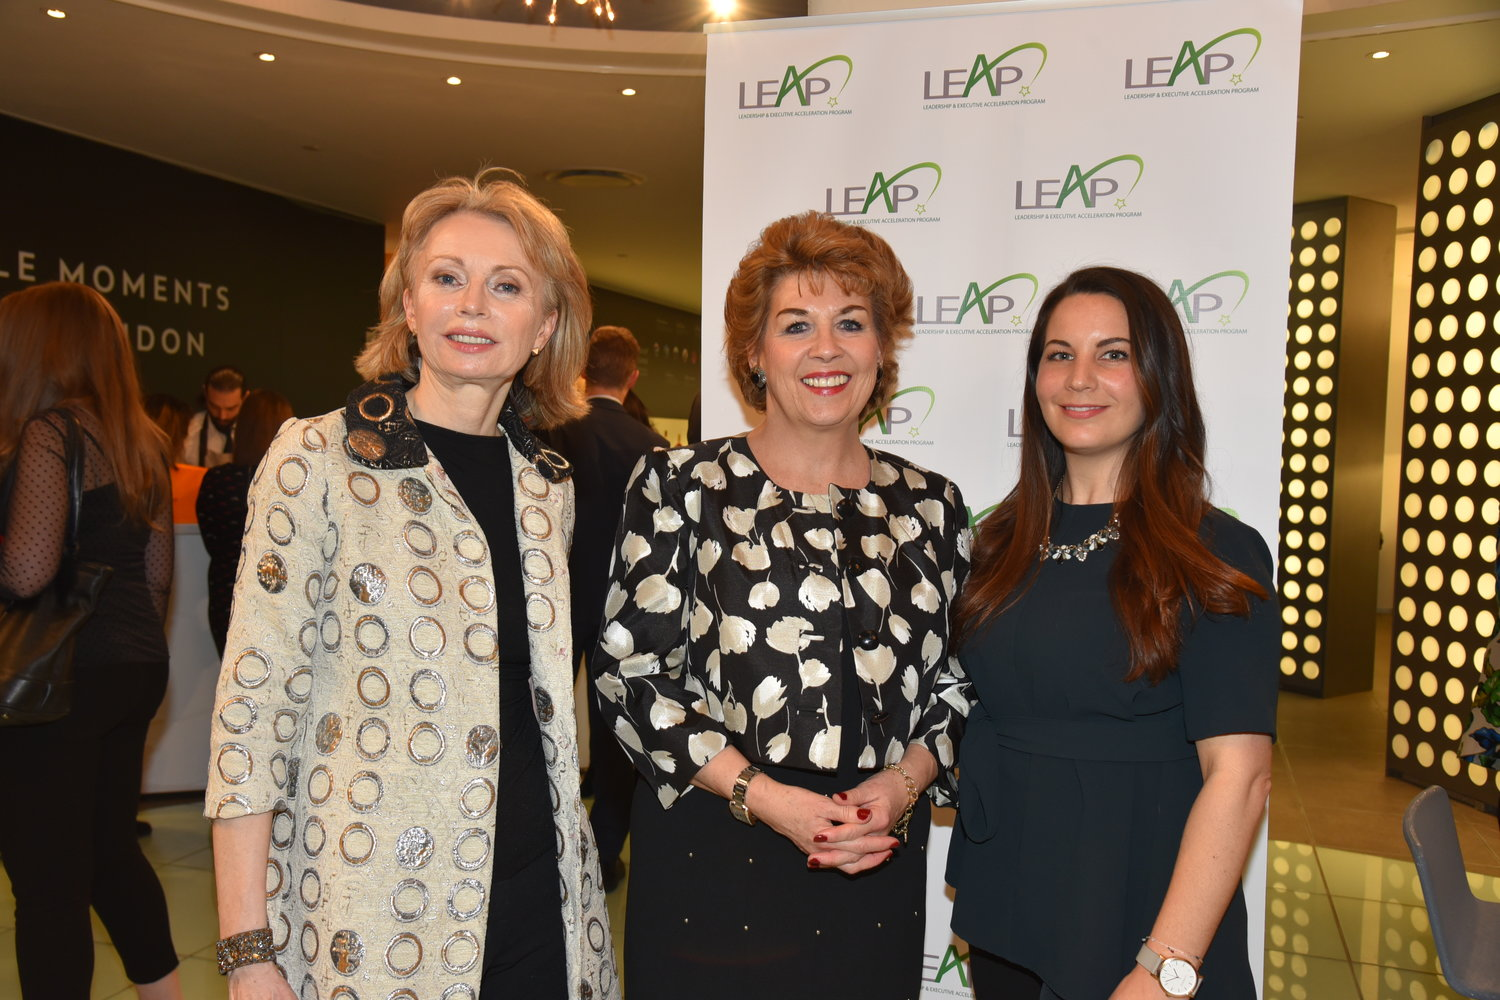 LEAP 2019 Reception - LEAP launched its second cohort at Moët Hennessy USA on 7 February 2019.